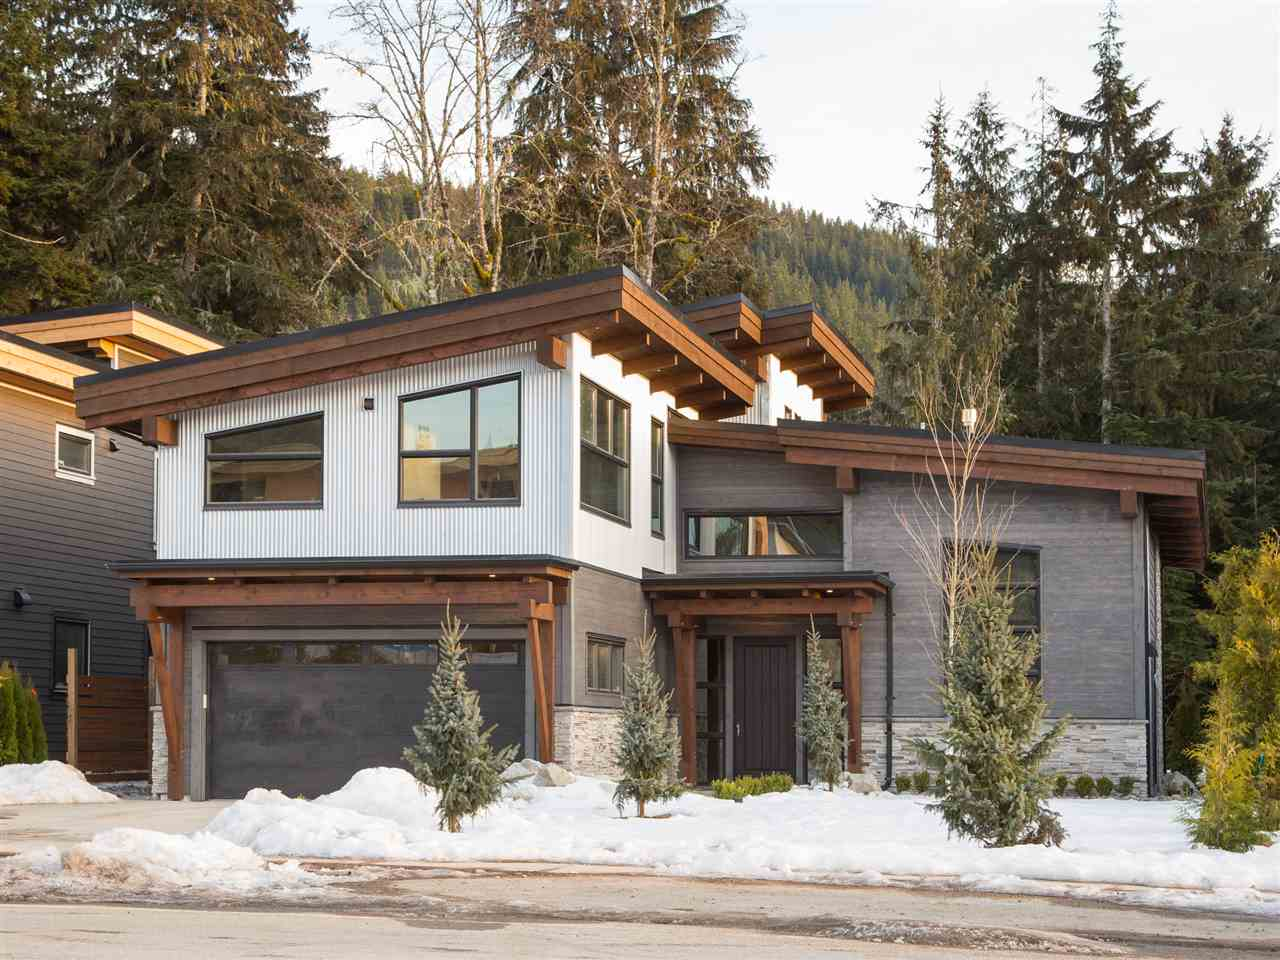 3324 MAMQUAM ROAD, Squamish, BC V0N 1T0